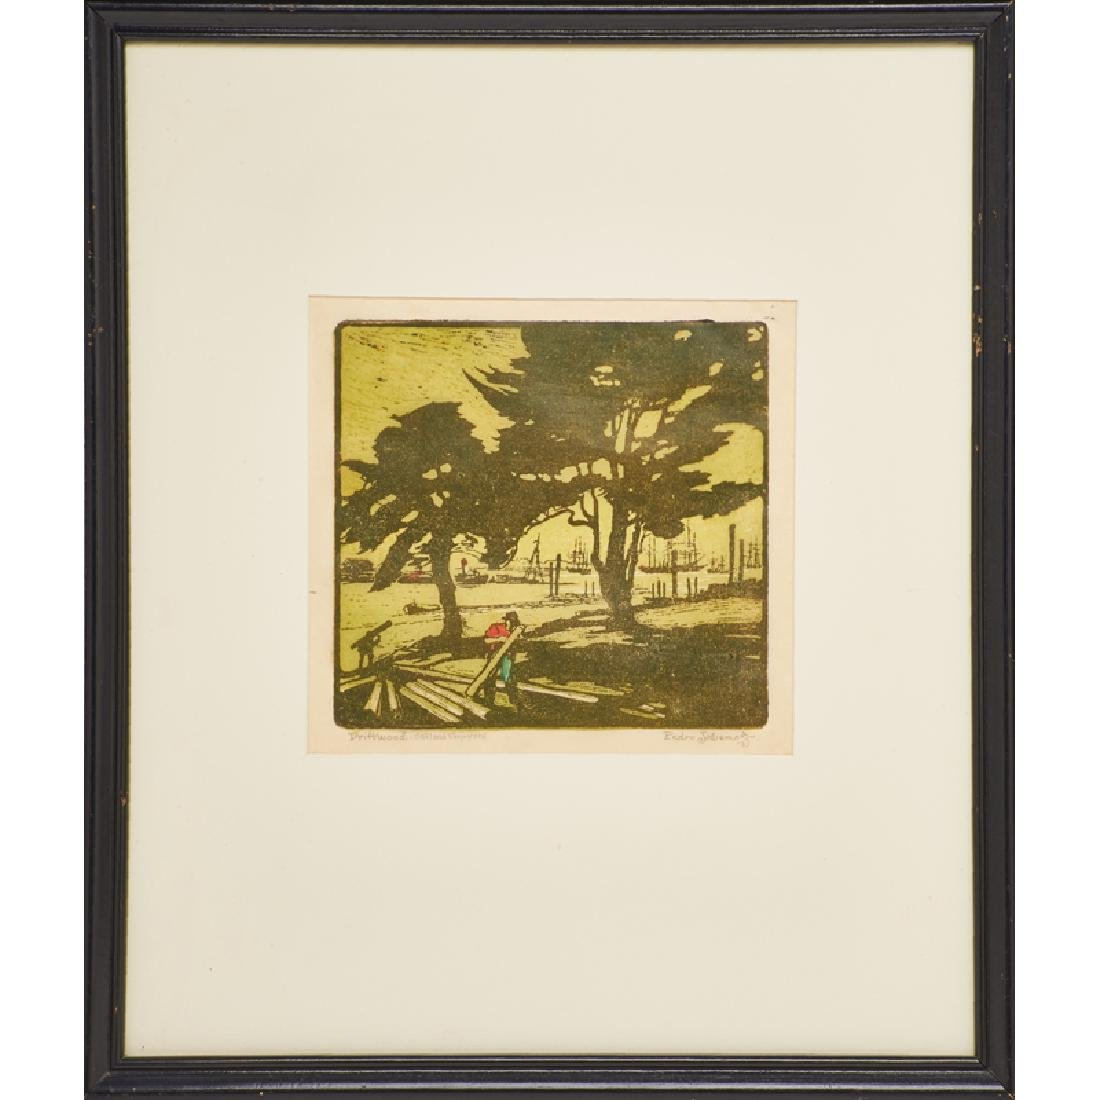 PEDRO DE LEMOS Color woodblock print